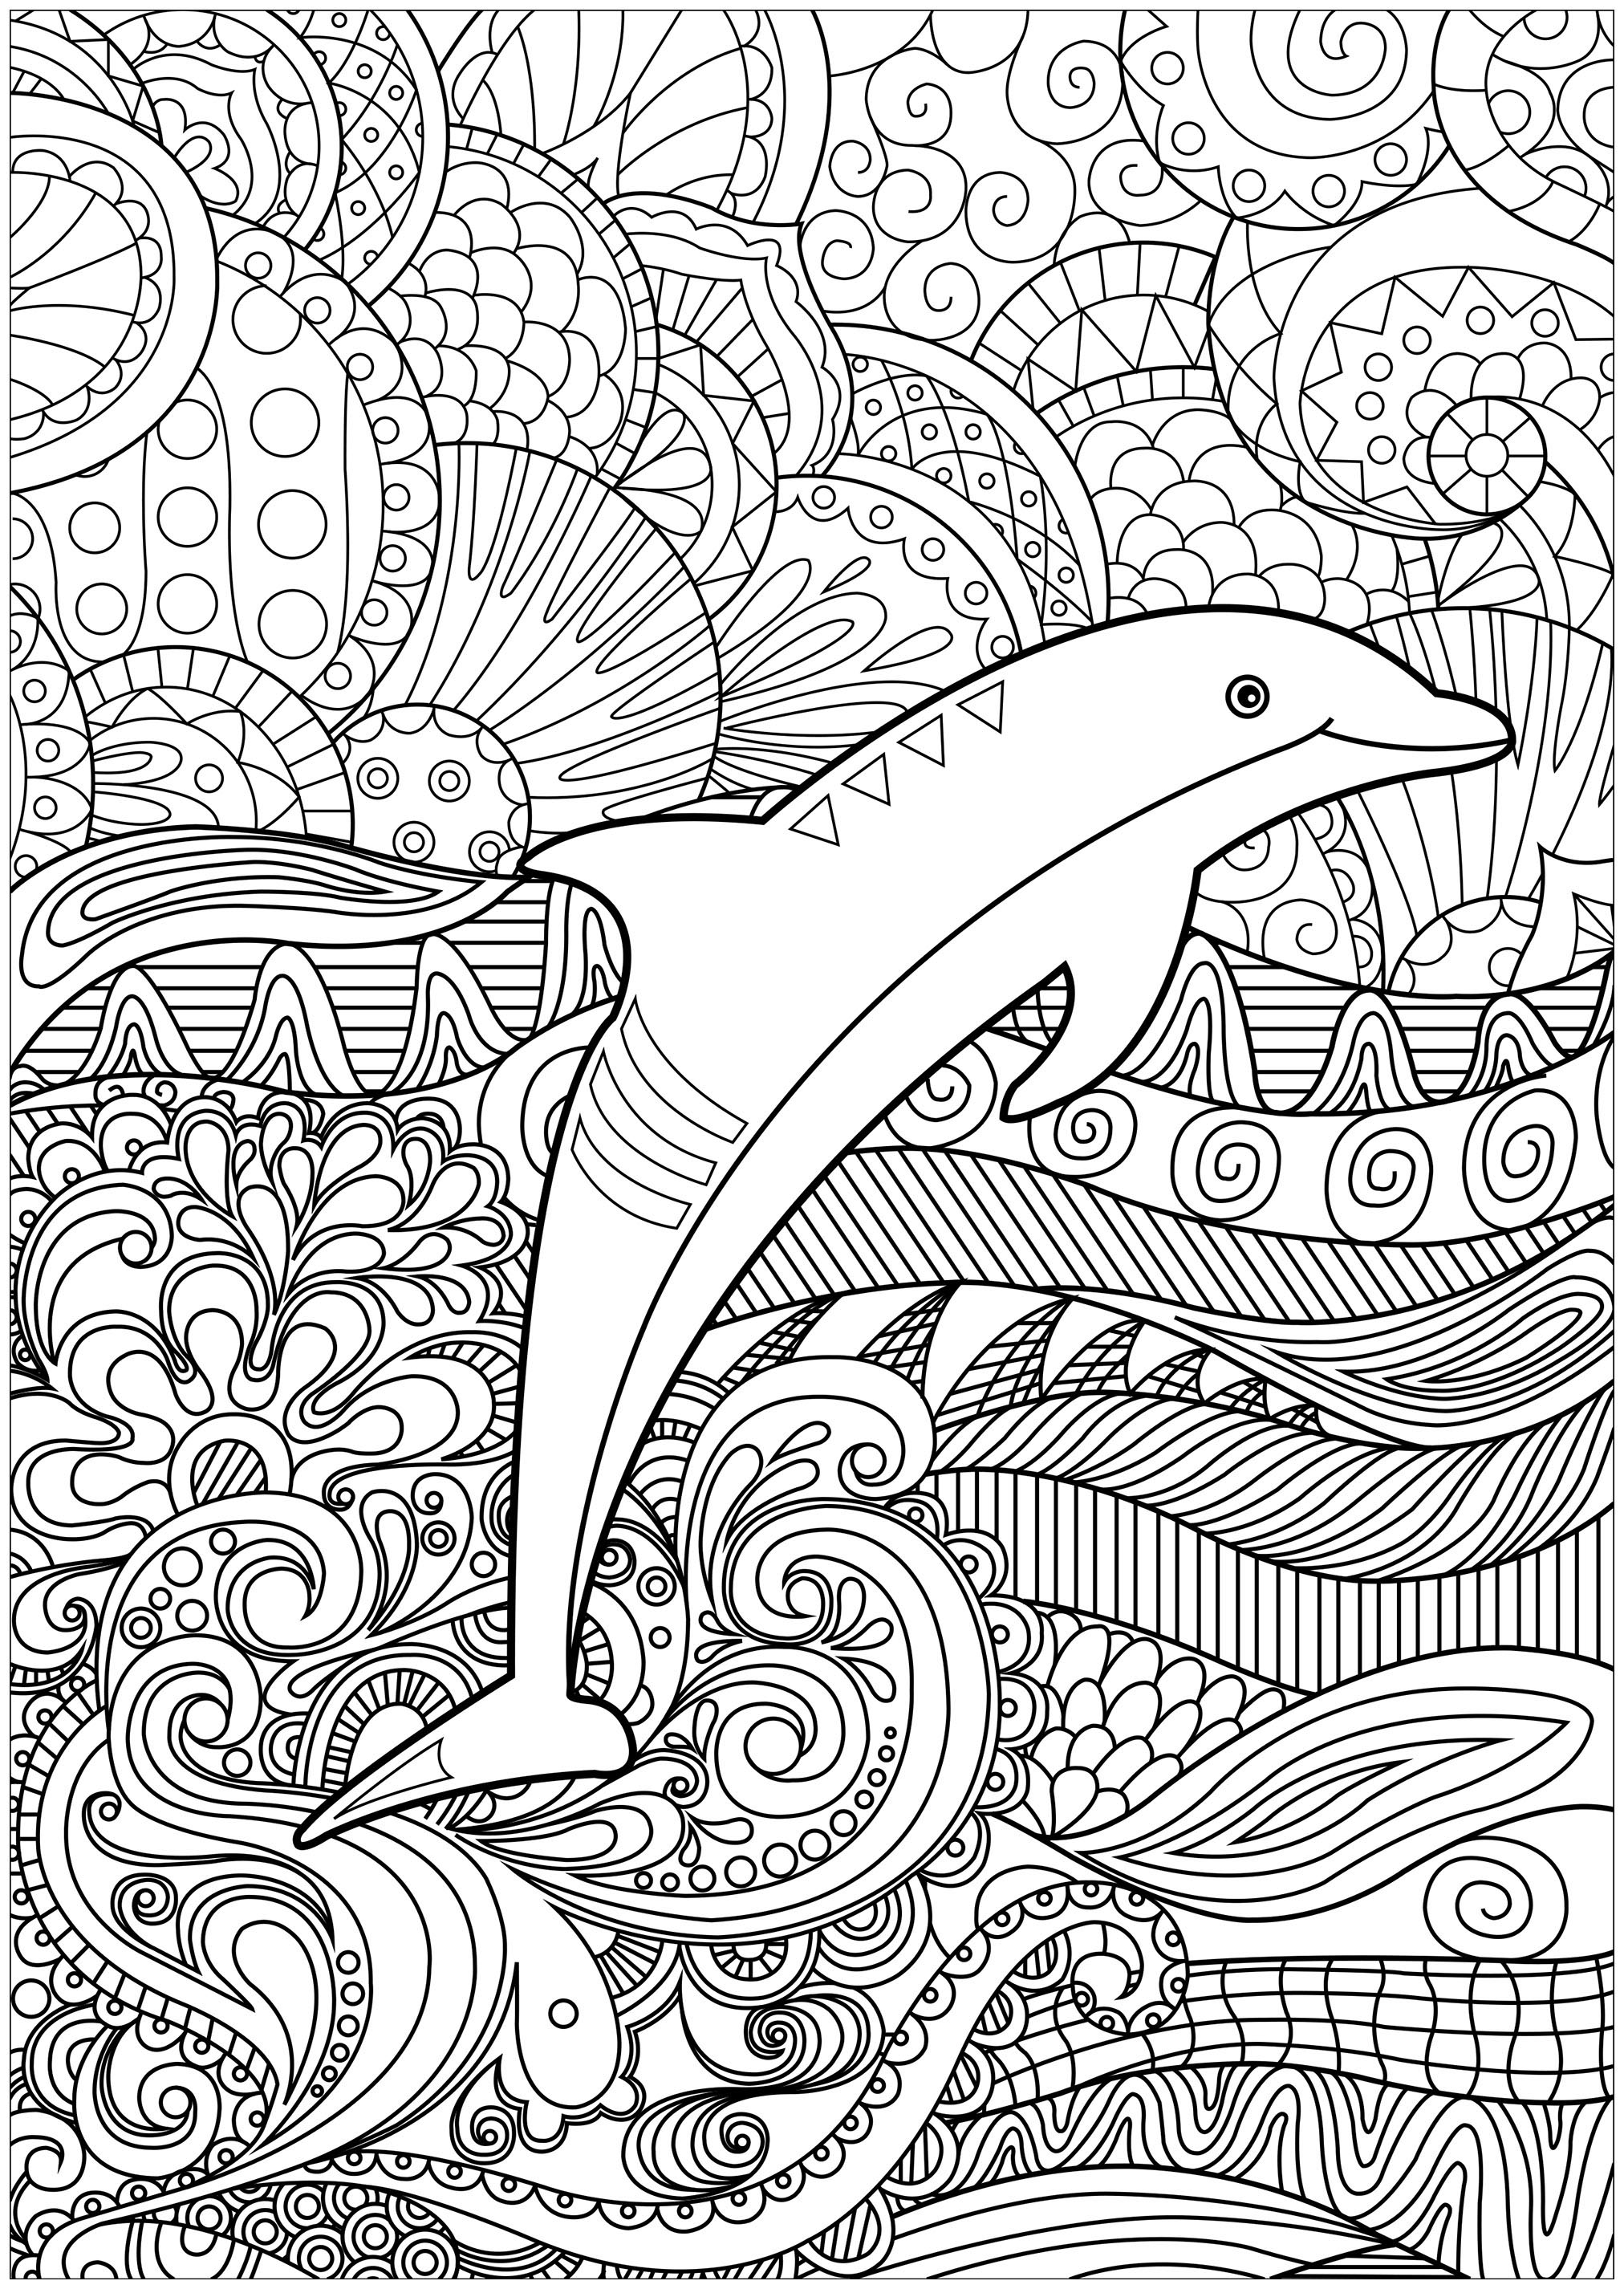 together with  furthermore Funny Perched Condor Coloring Page together with  as well . on dolphin coloring pages for adults